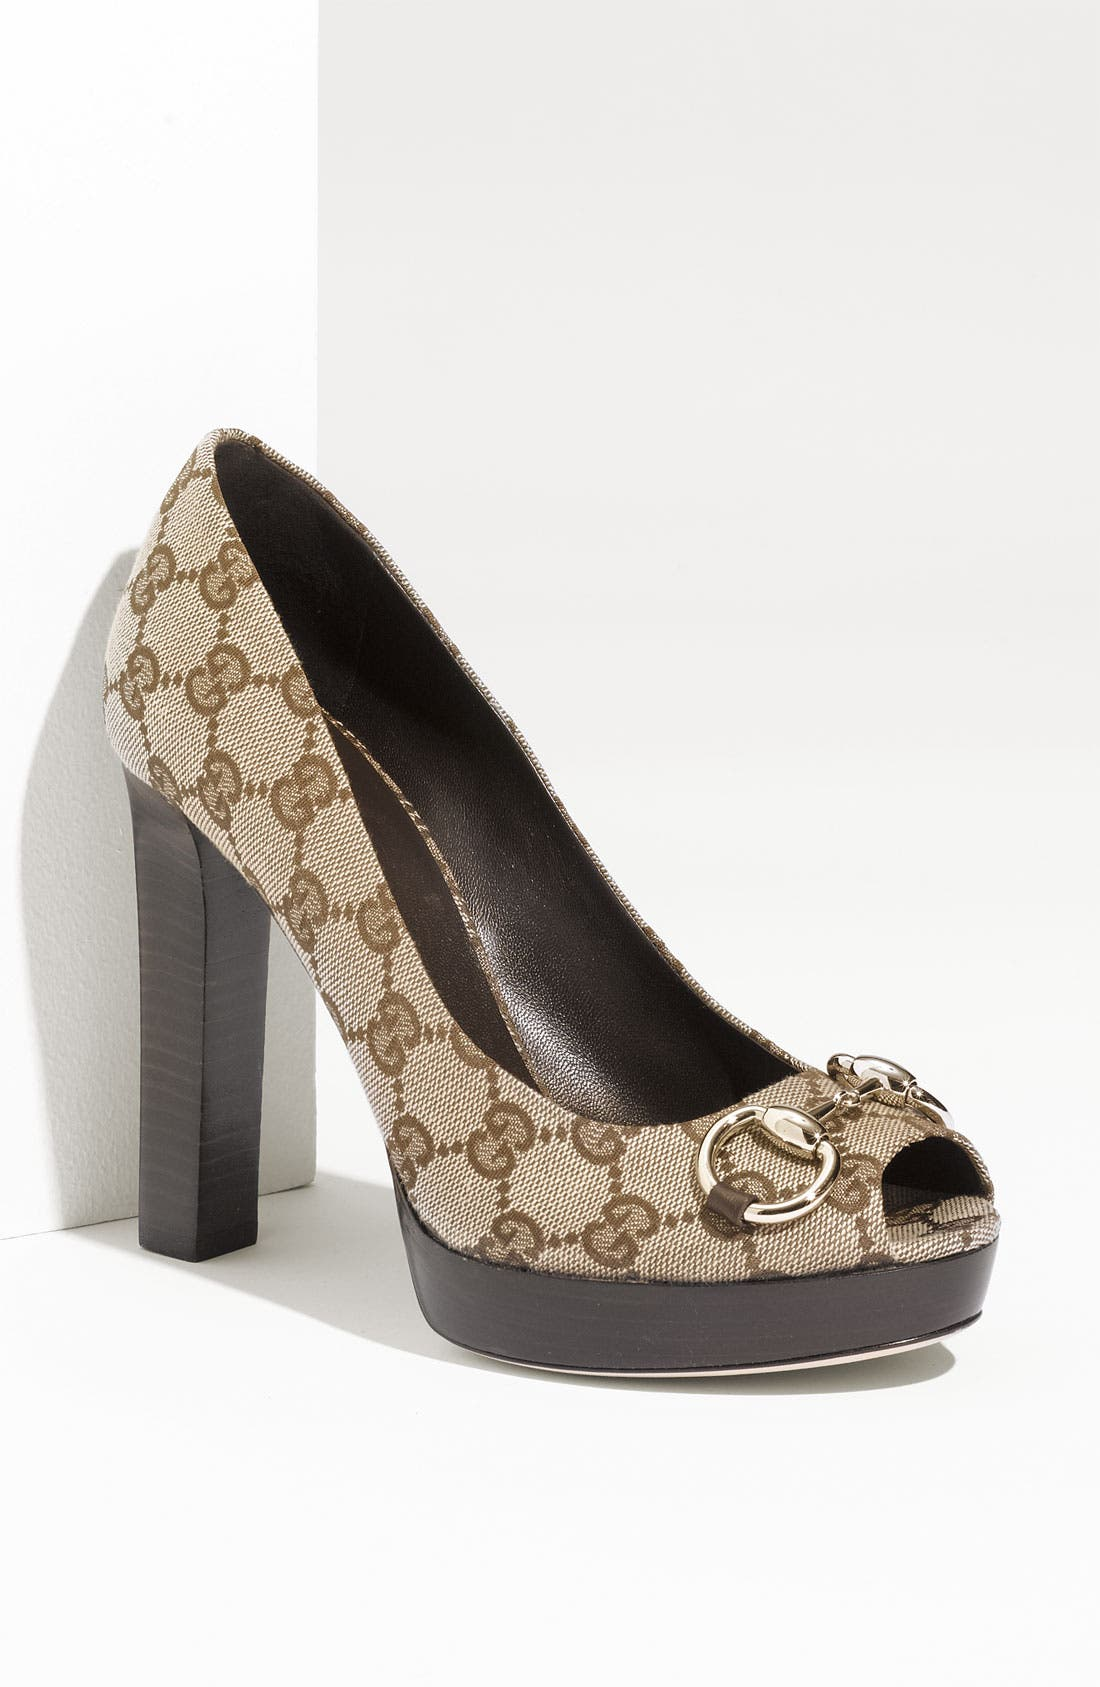 Alternate Image 1 Selected - Gucci 'Sunset' Peep Toe Platform Pump